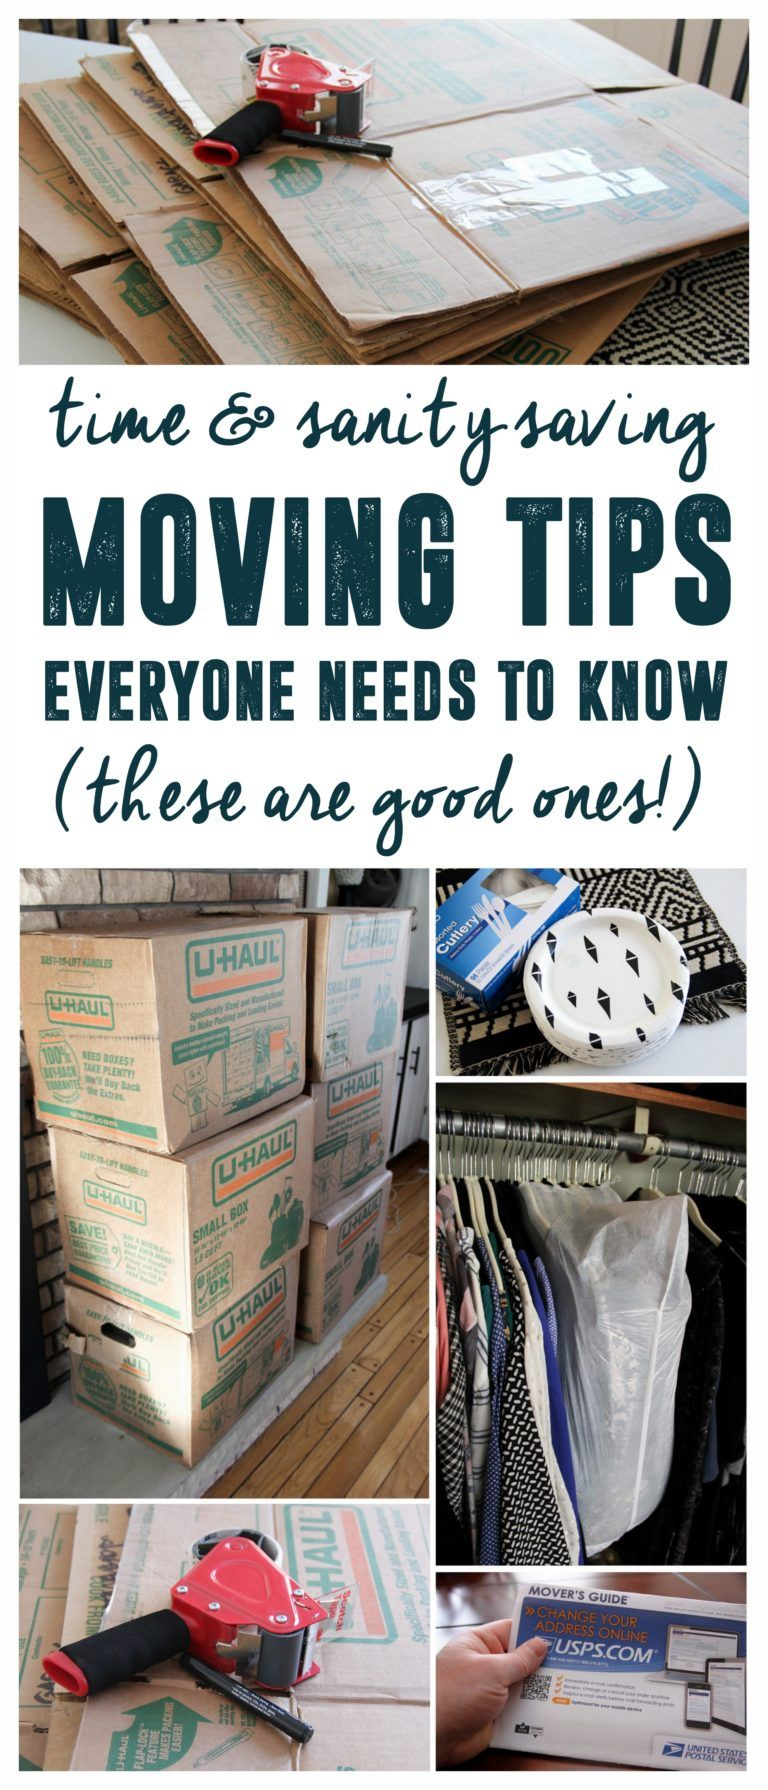 How to save time on cleaning the apartment: the best tips